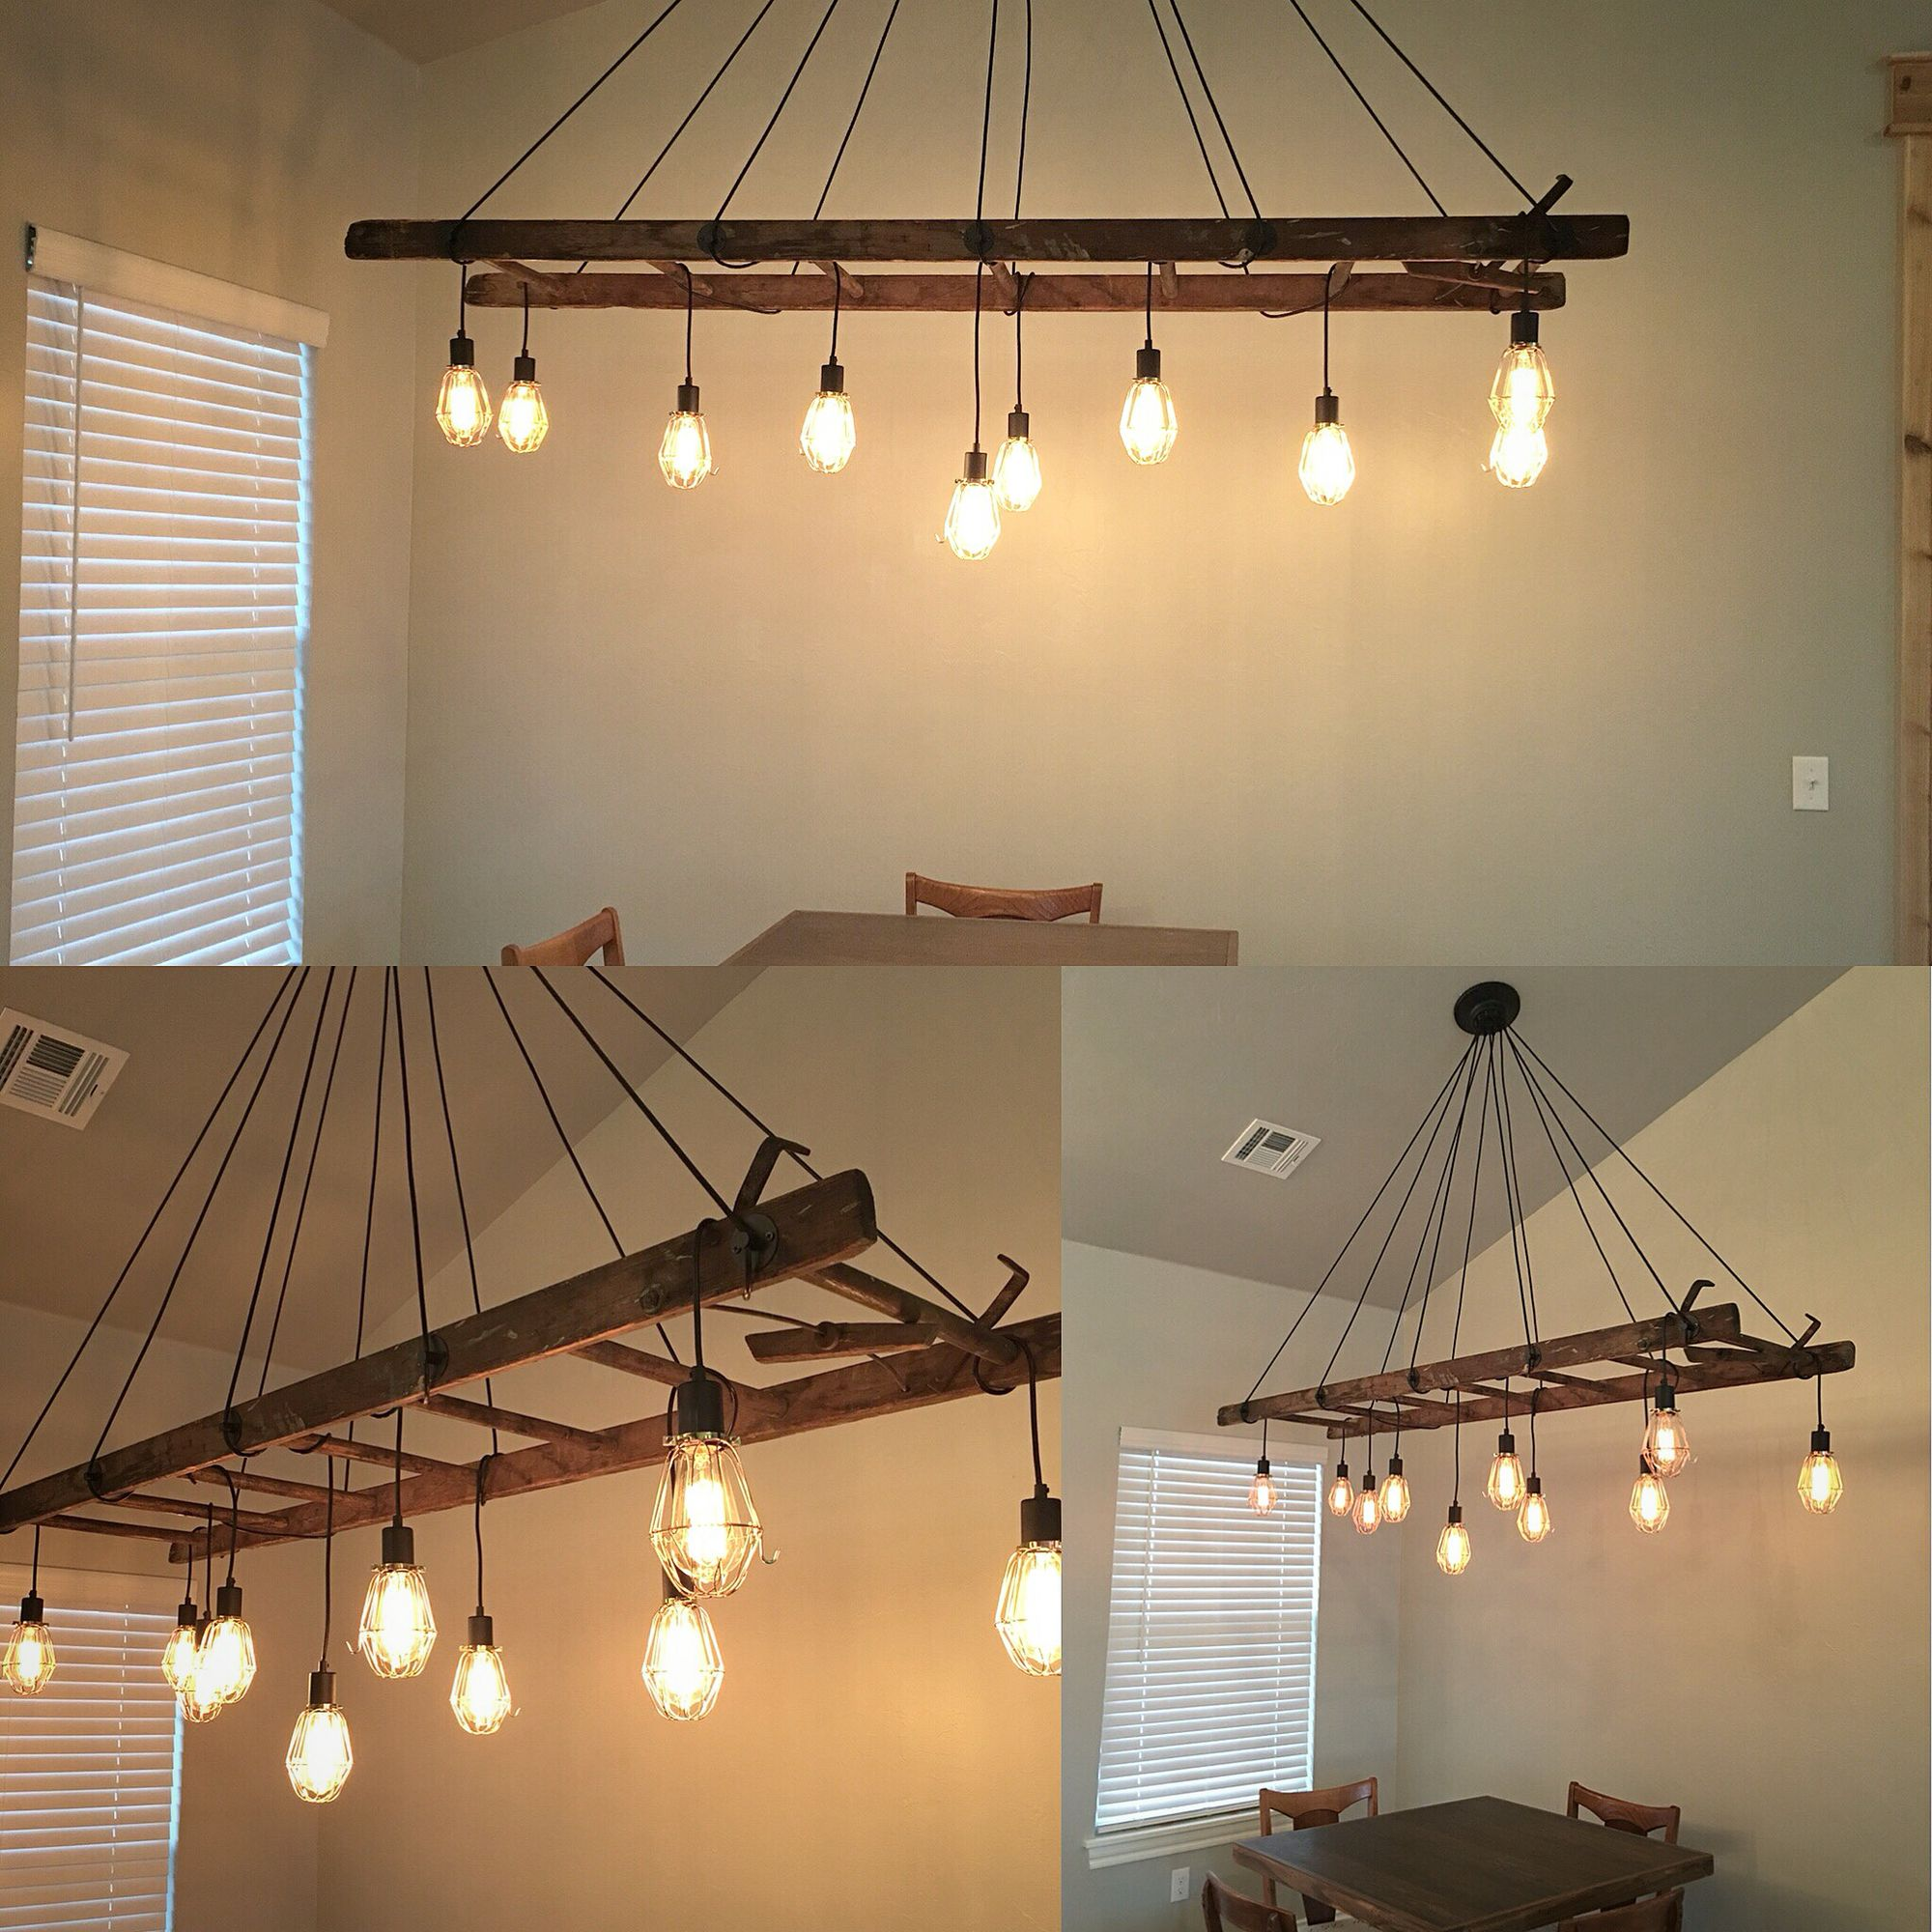 Old Wood Ladder Turned Into A Chandelier By Kelli Potts And Dylan